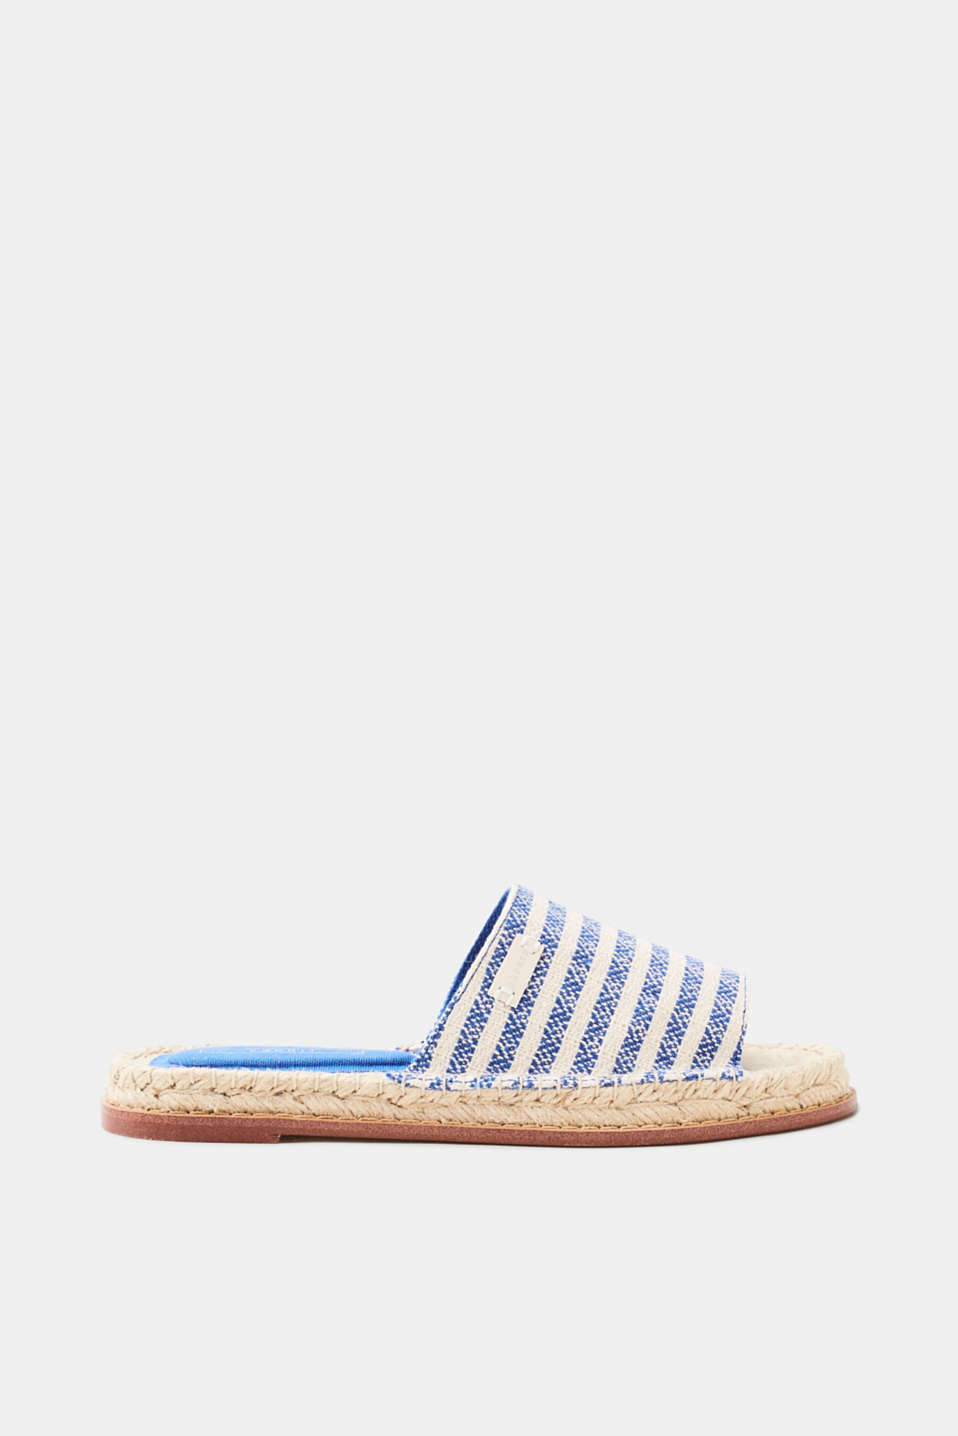 Go stylishly through the summer: open-toe mules with striped woven straps